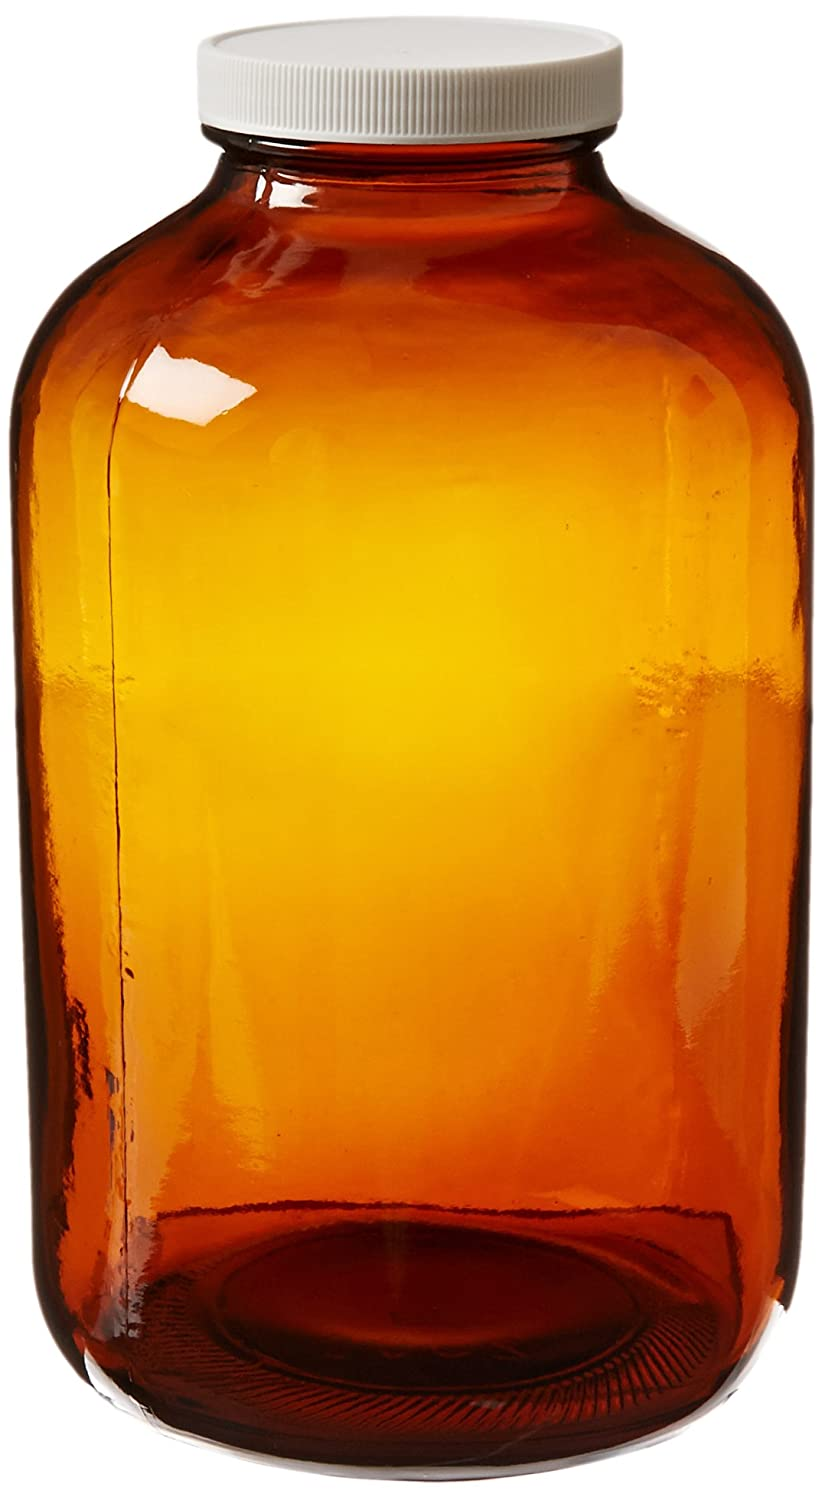 JG Finneran 9-226-2 Amber Borosilicate Glass Precleaned Wide Mouth Packer with White Polypropylene Closure and 0.015 PTFE Lined Pack of 4 70-400mm Cap Size 80oz Capacity